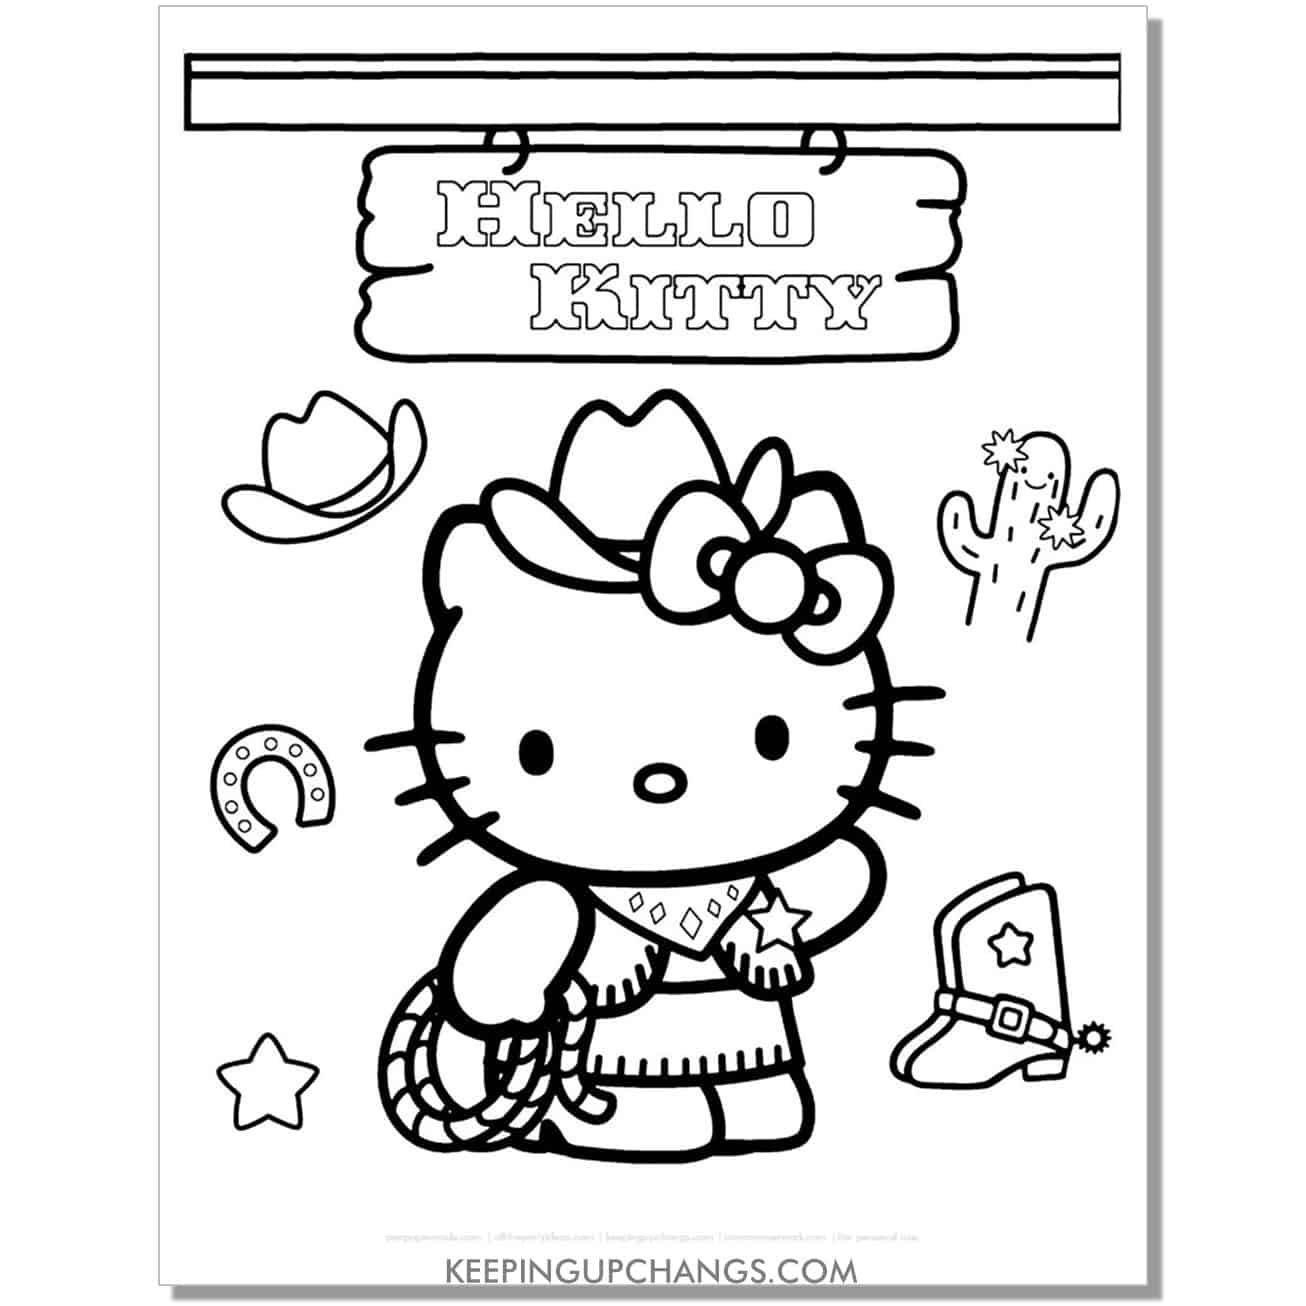 western cow girl hello kitty coloring page.